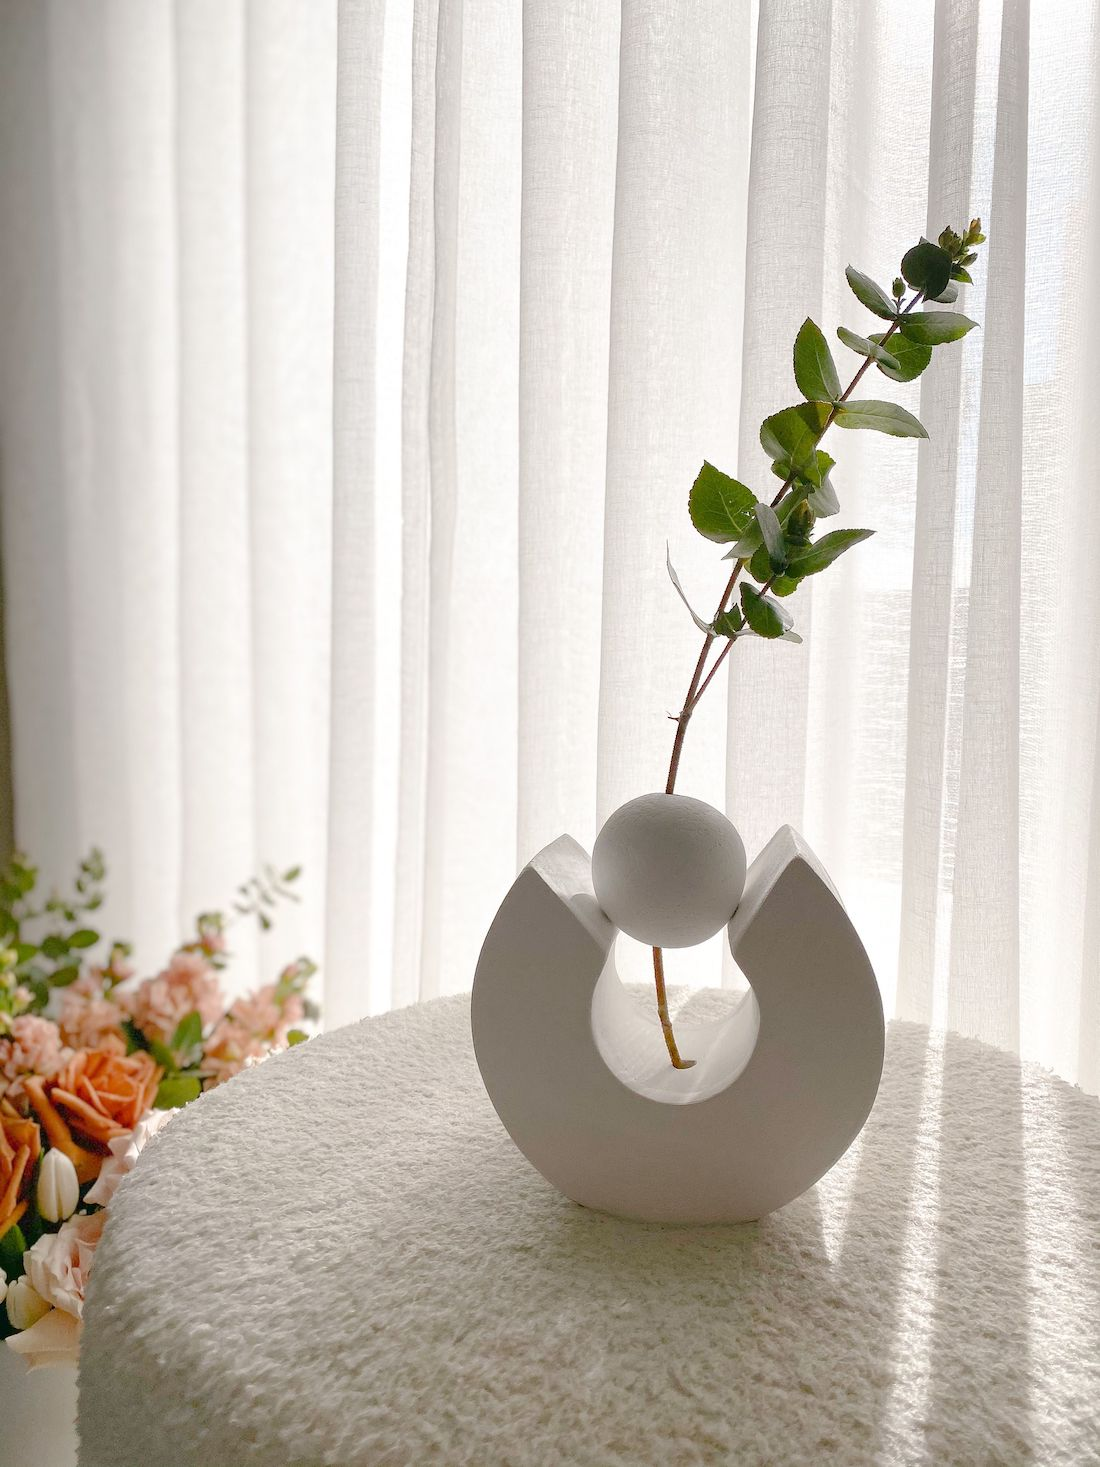 Vase in front of sheer curtain